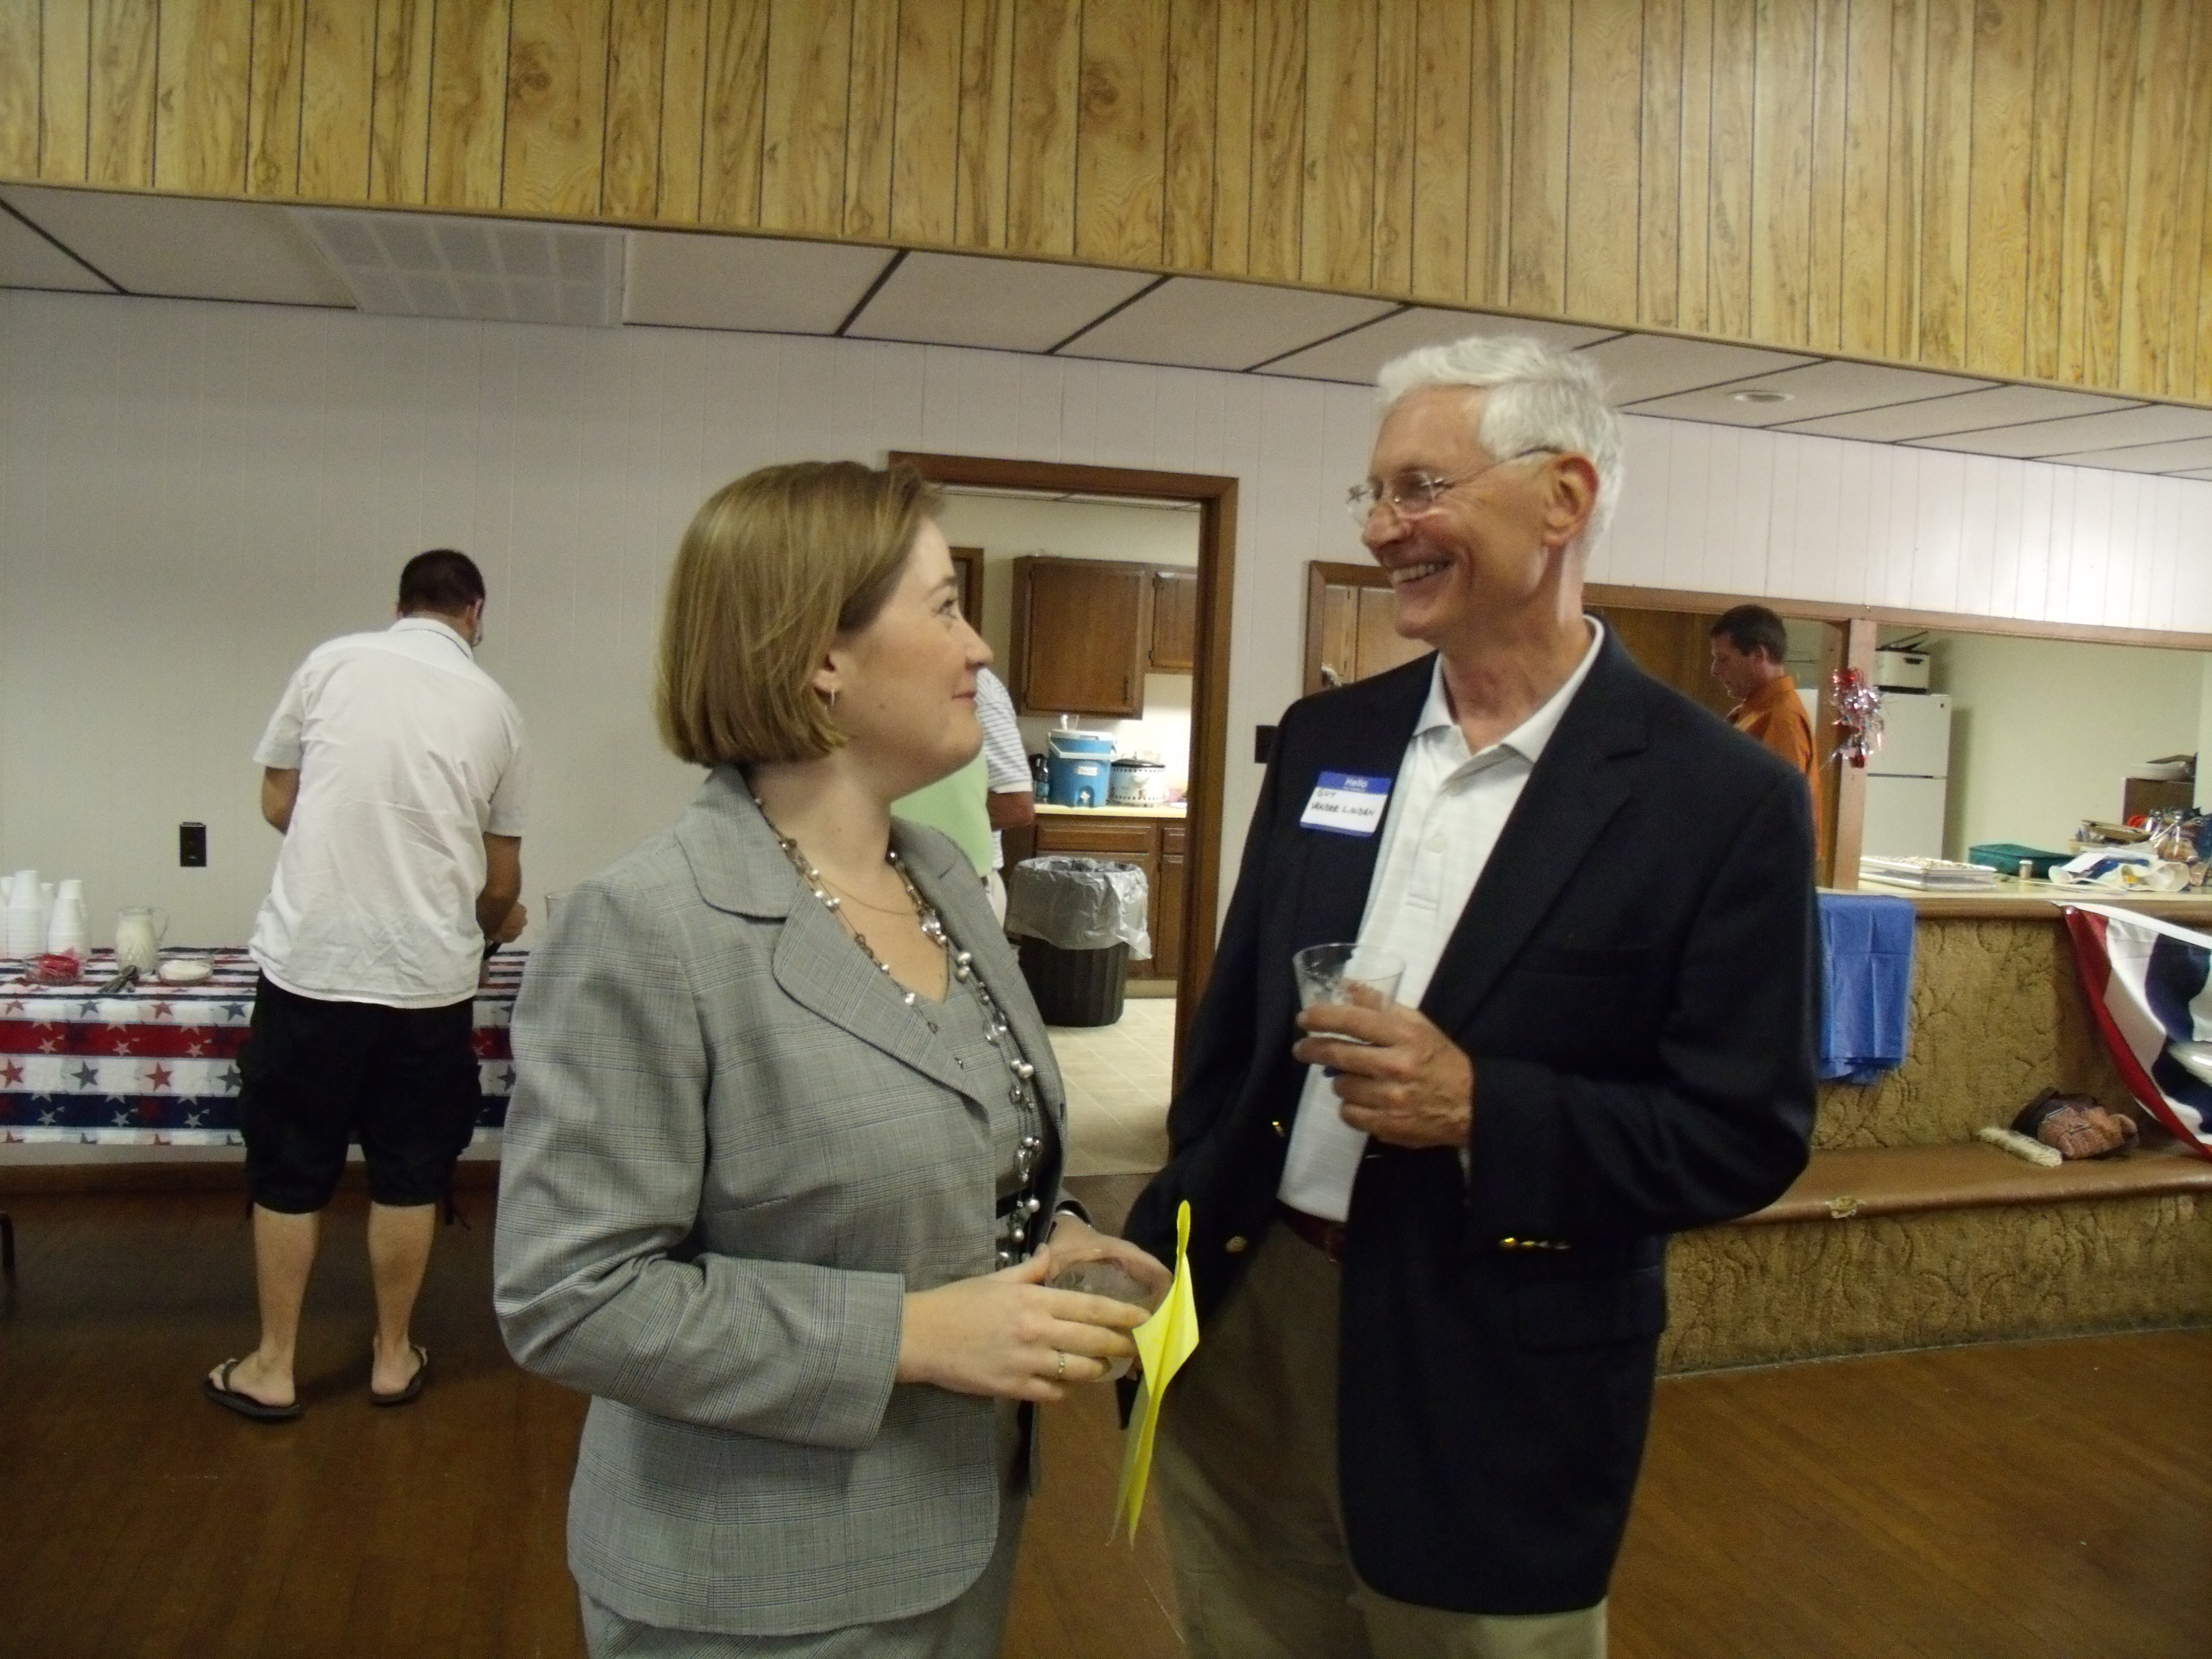 Brenna Findley and Guy Vander Linden catch up on recent State House events during the Poweshiek County Republican social event Friday evening